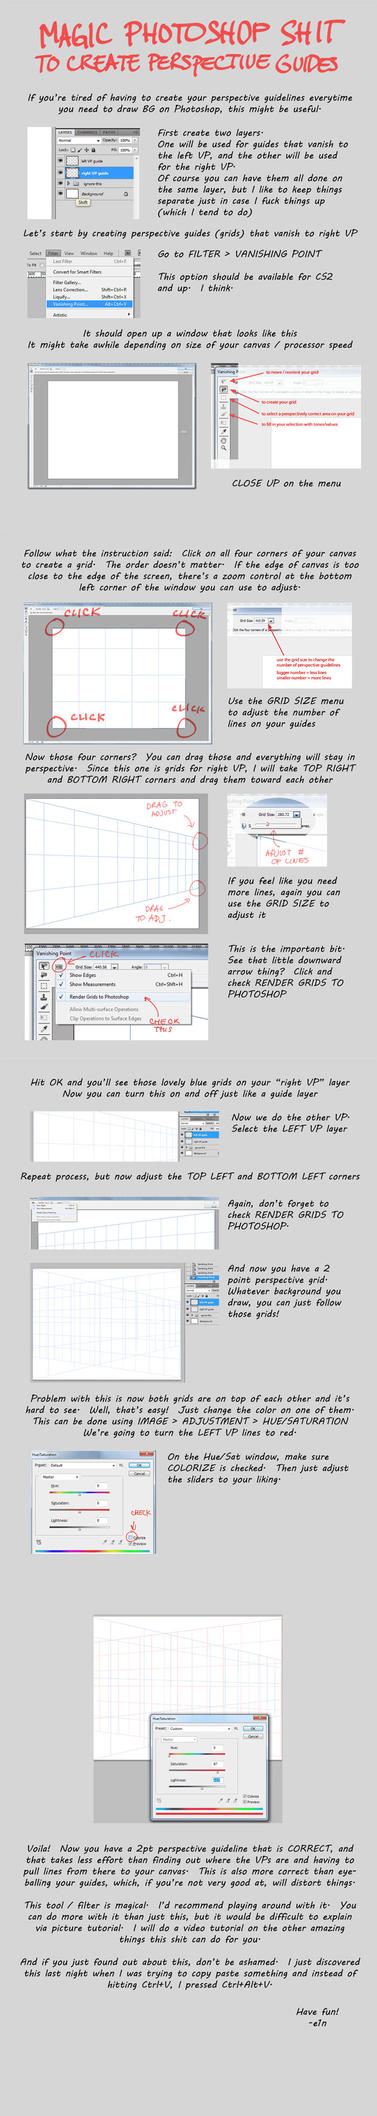 Tutorial: Magic Perspective Guidelines by e1n